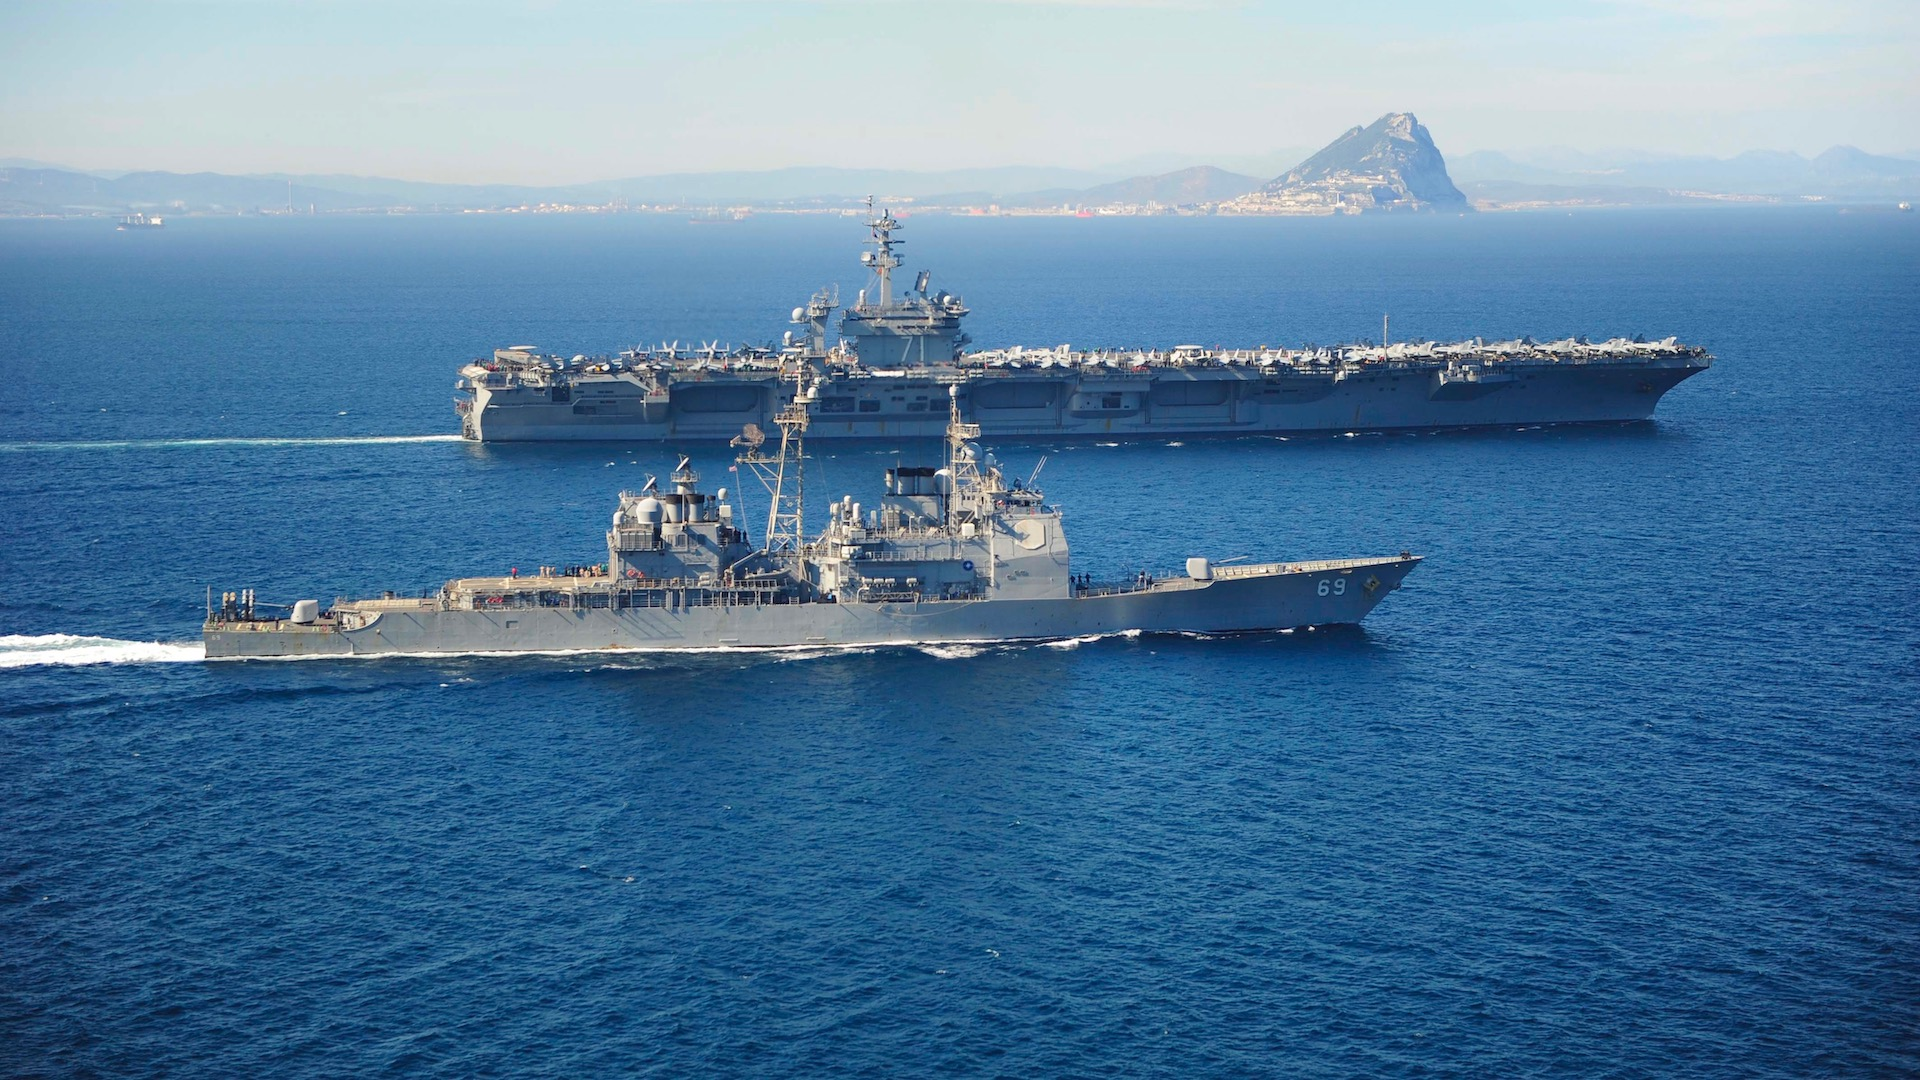 US Navy Commander Relieved of Duty After Raising Concerns Over COVID-19 on Ship